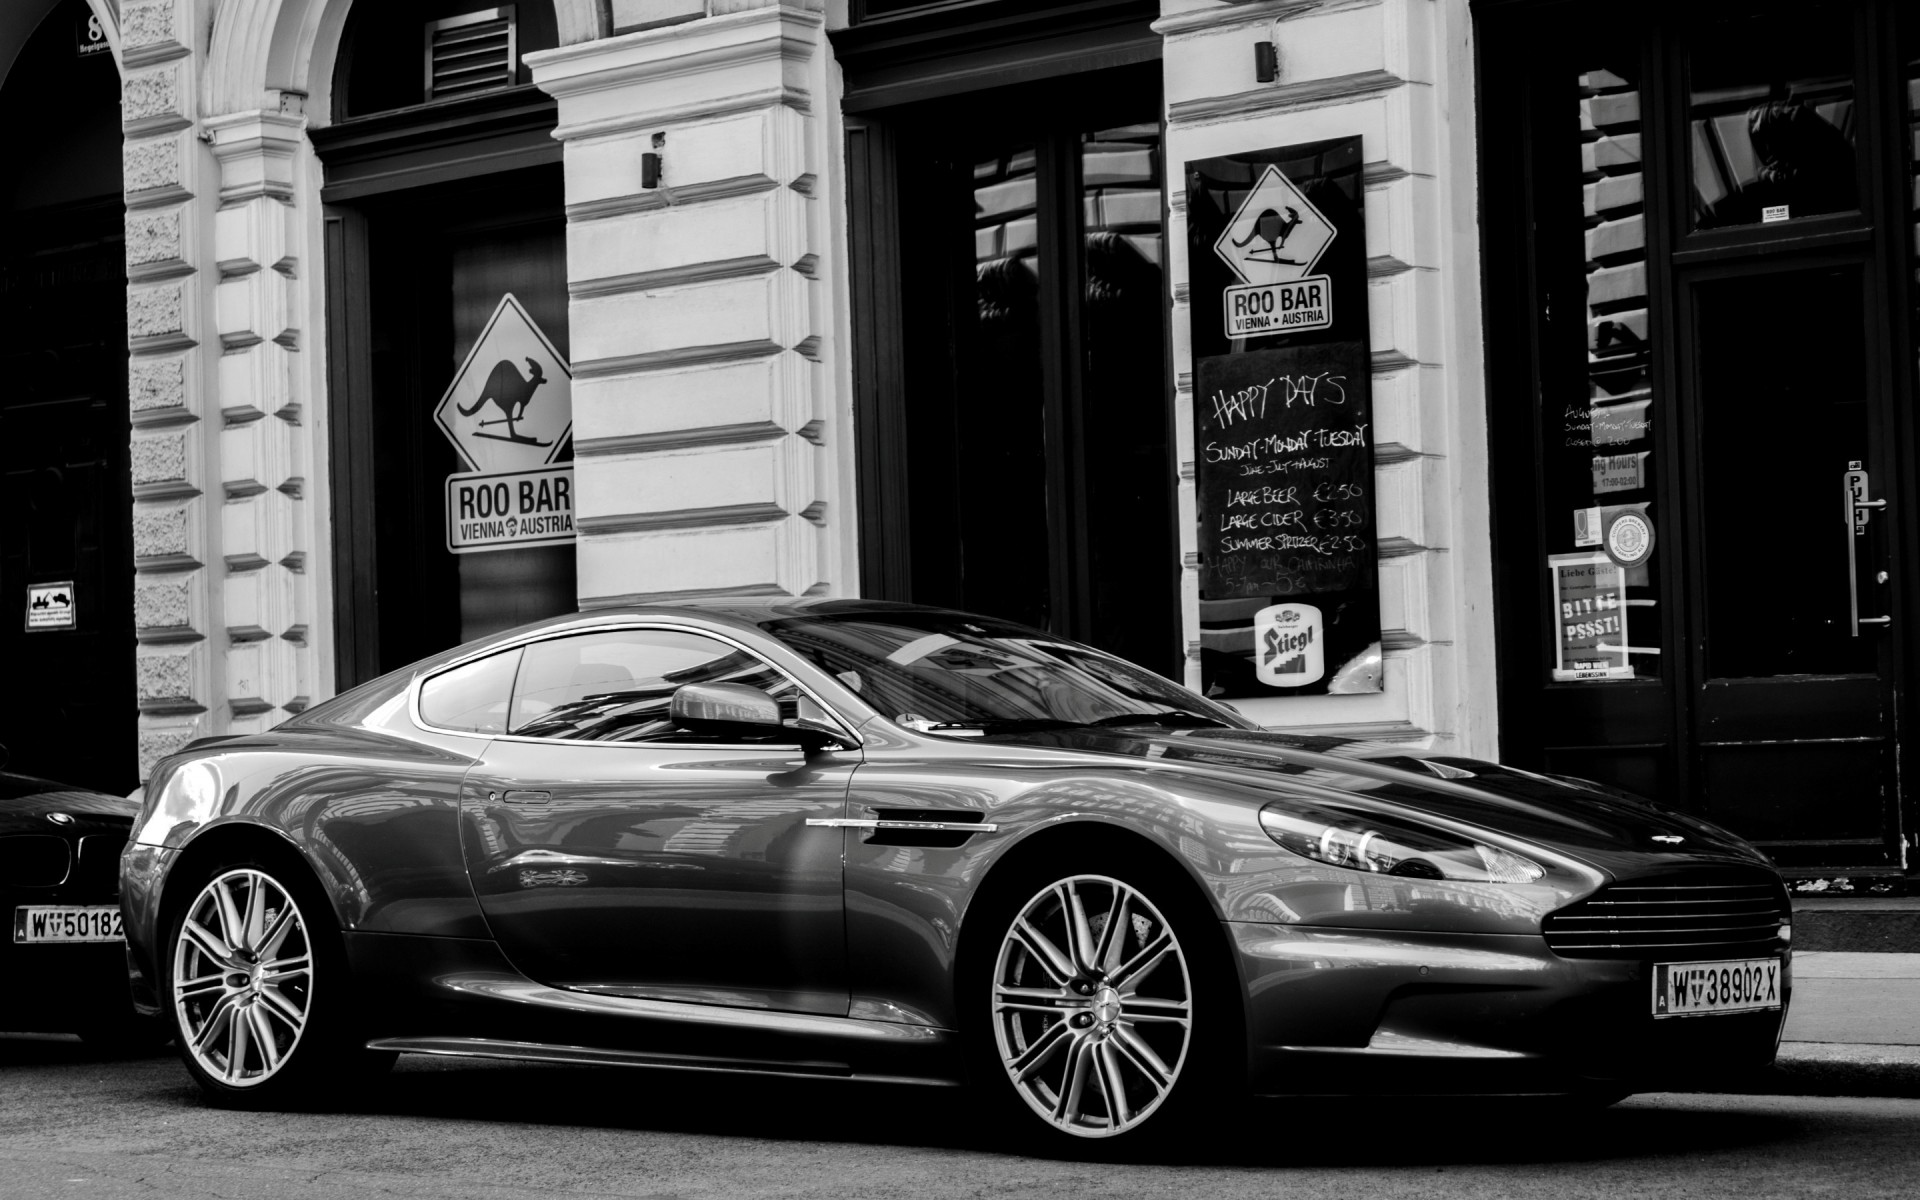 aston martin car vehicle automotive classic street pavement transportation system show wheel aston martin dbs